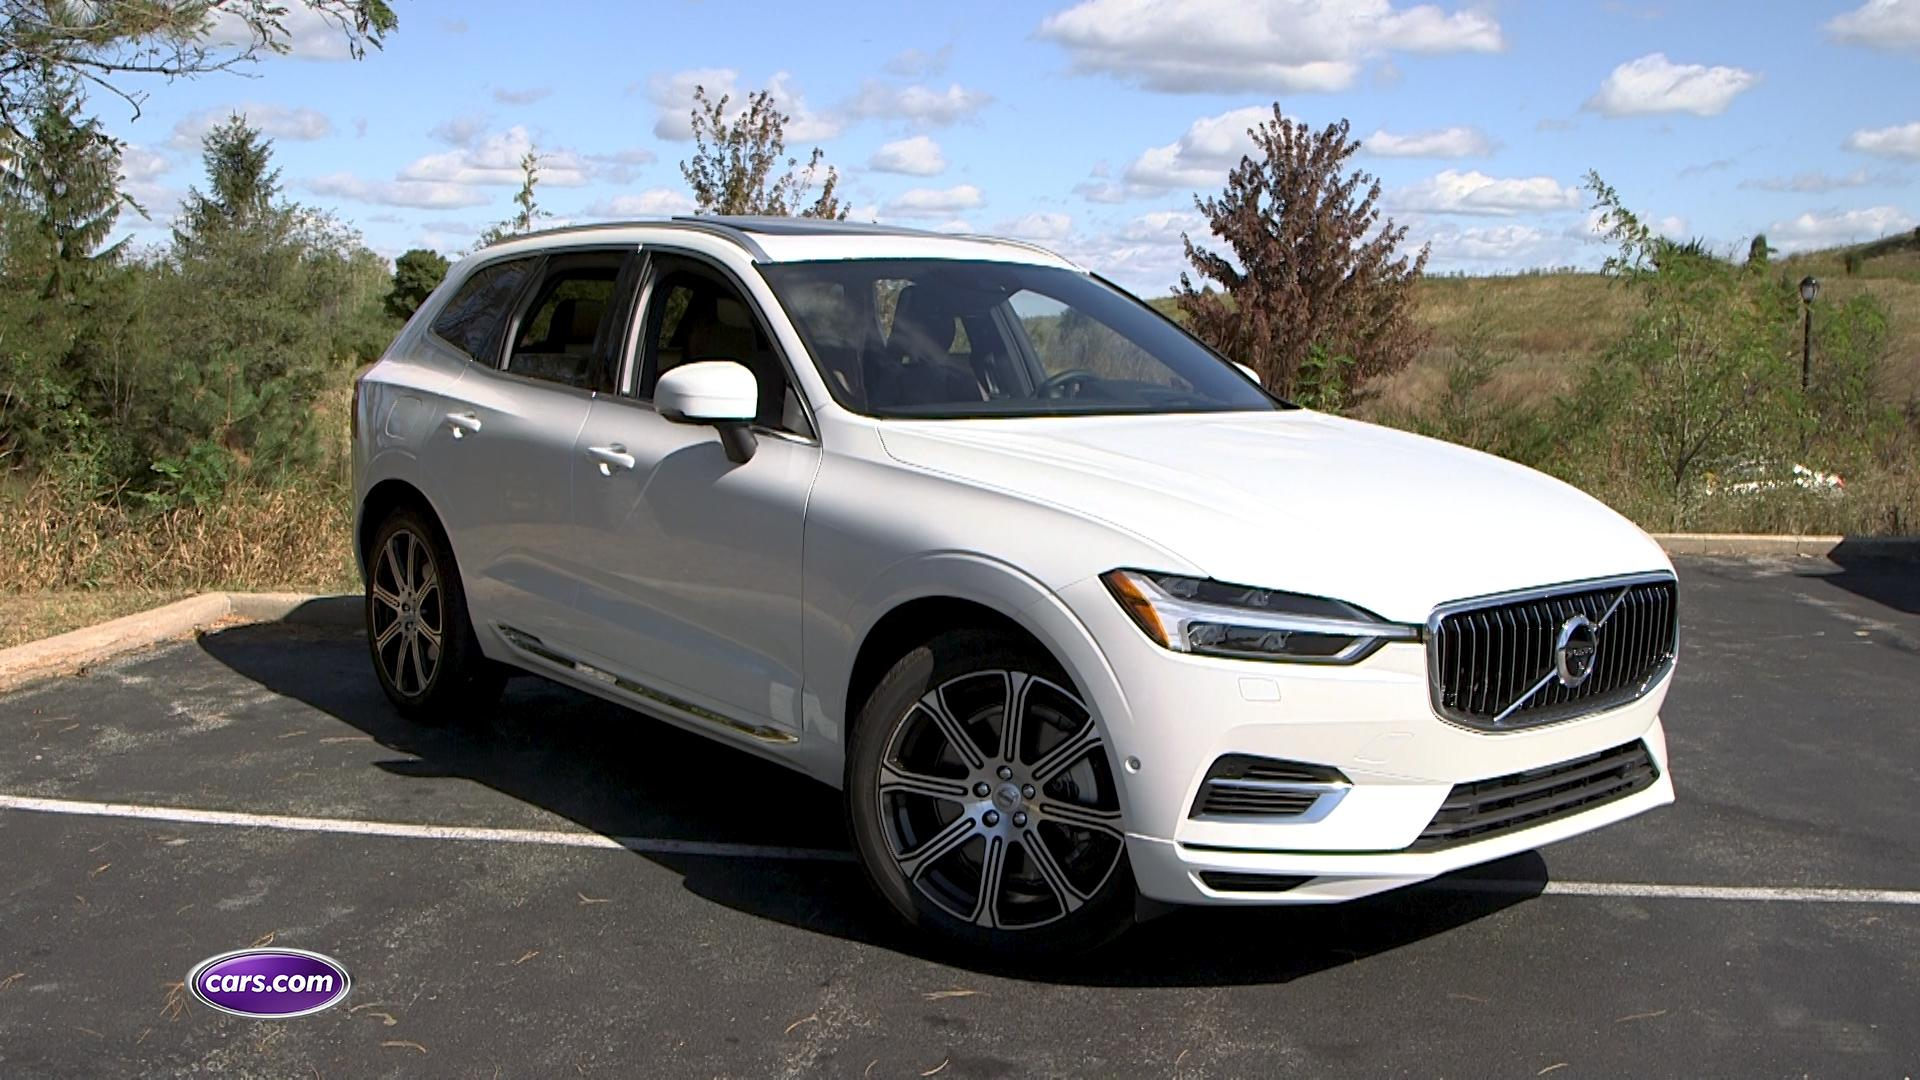 2018 Volvo XC60 Video Review